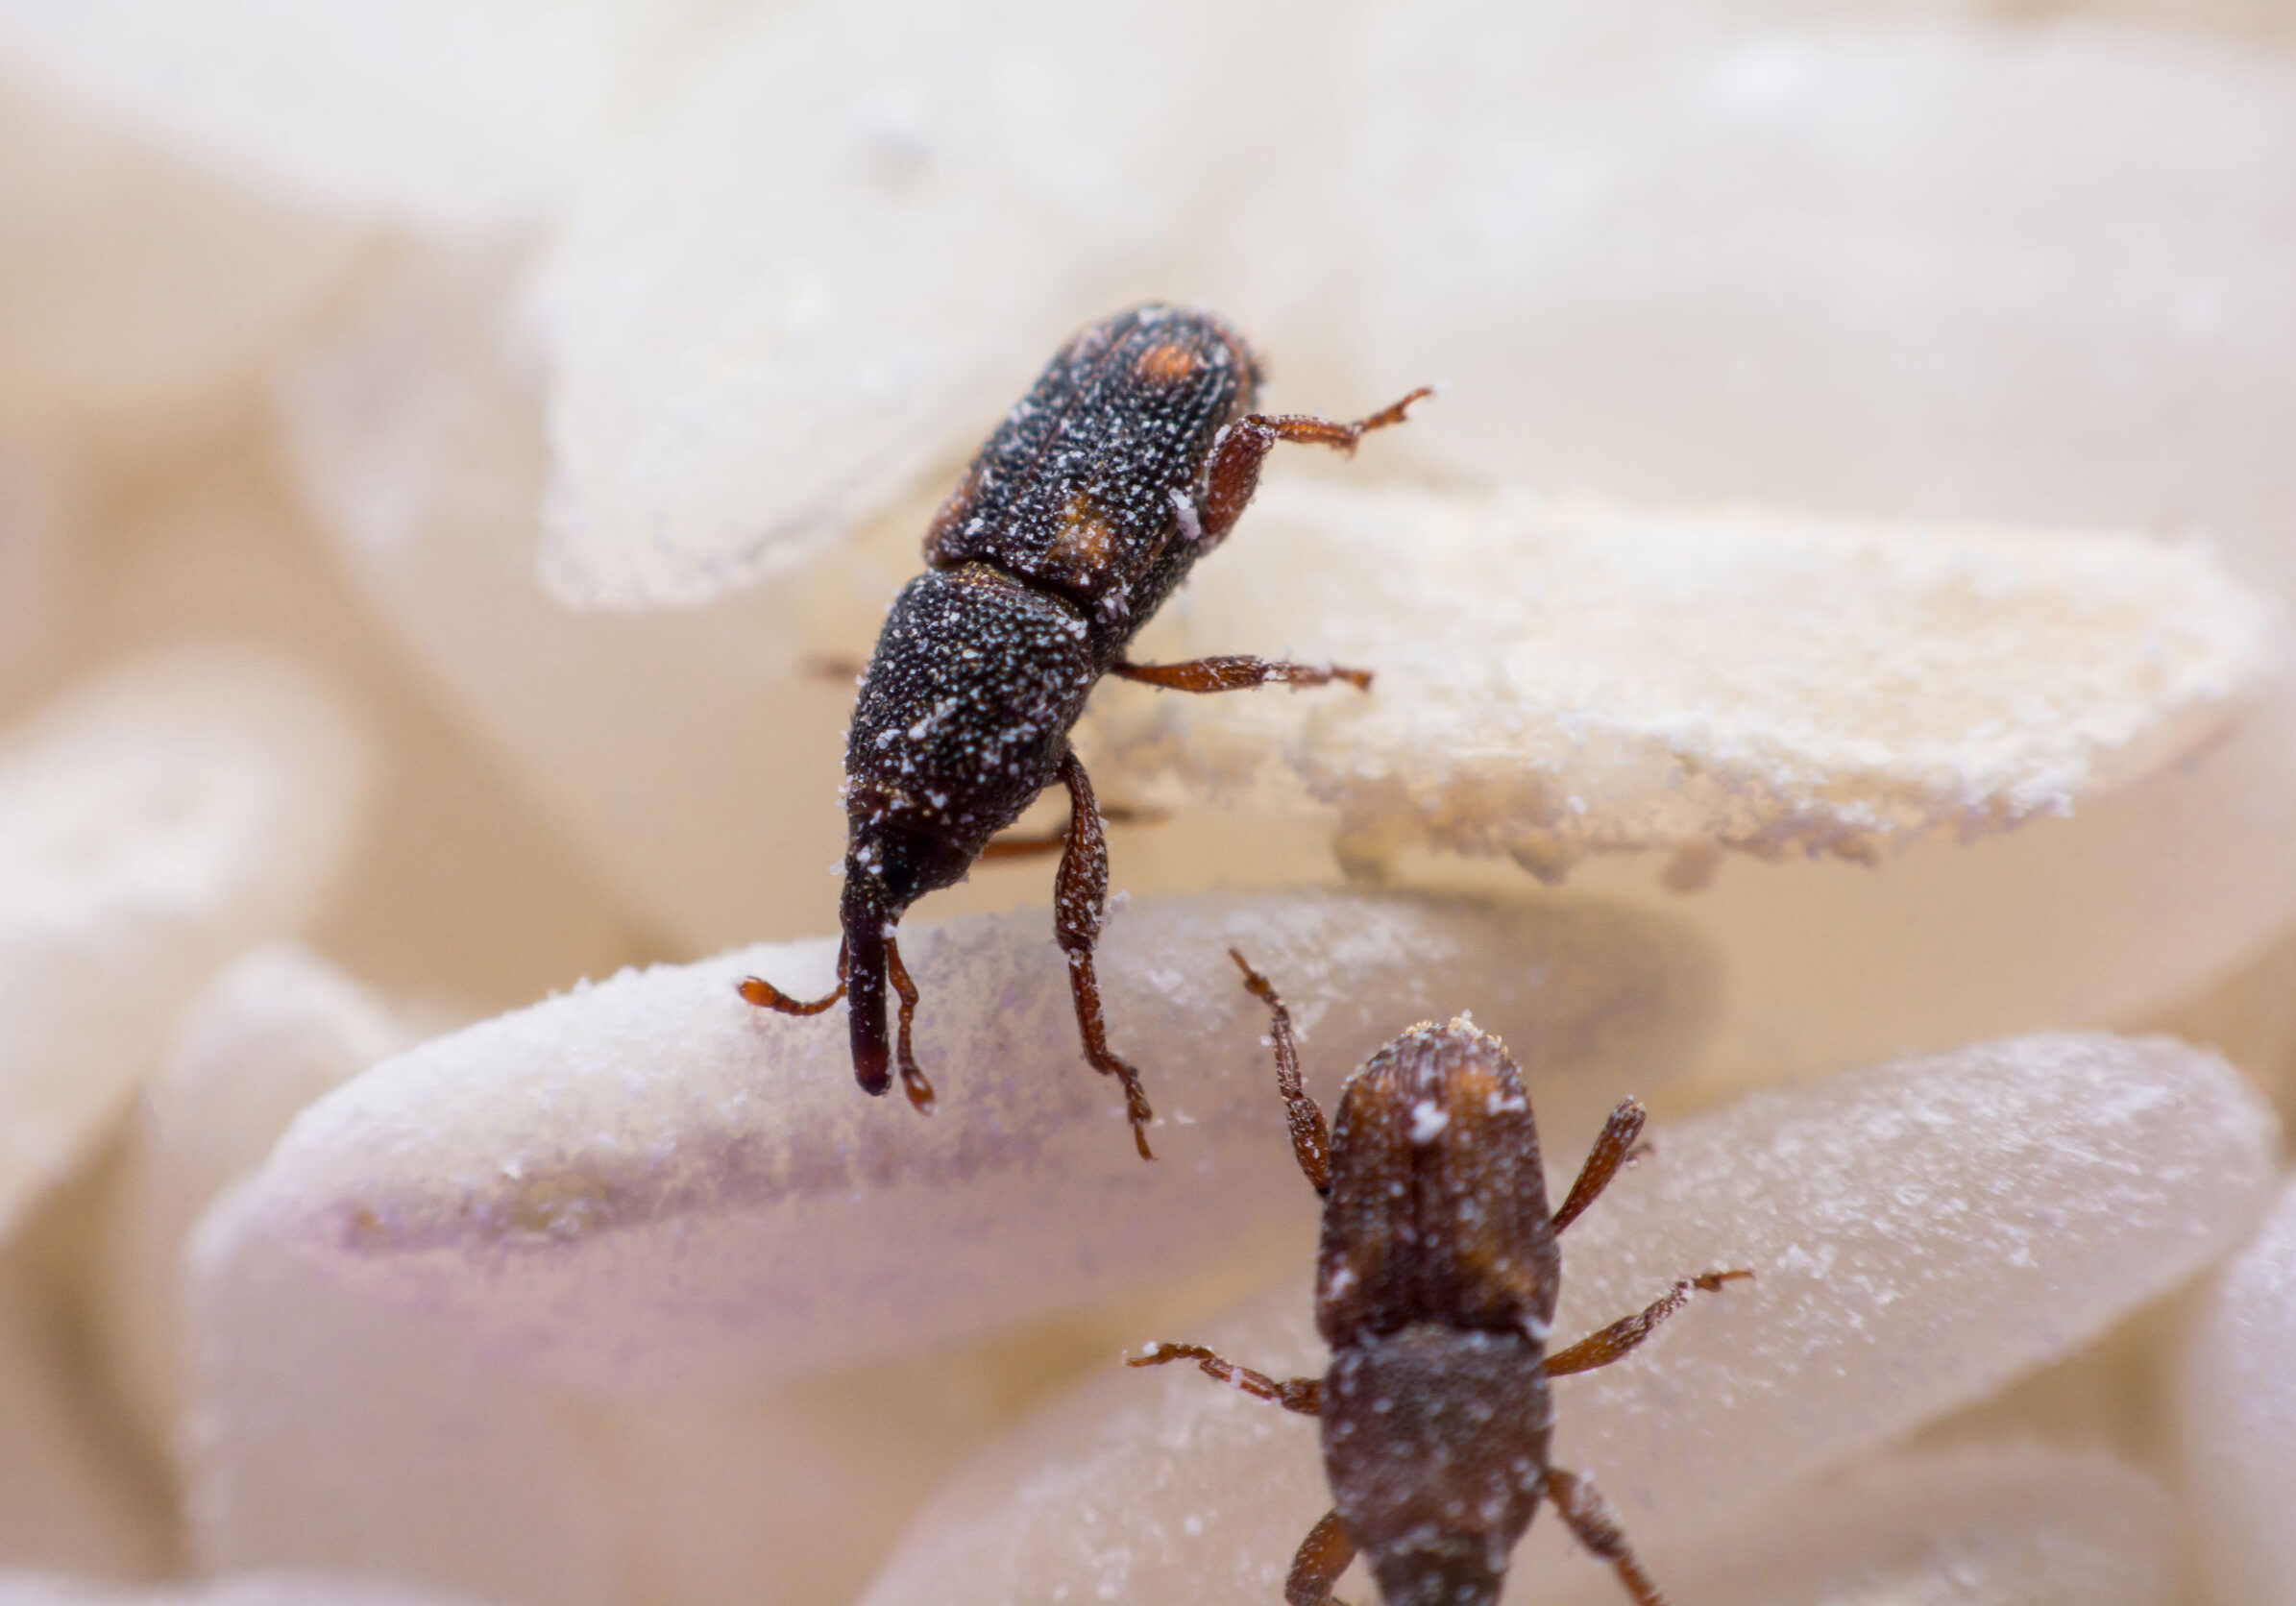 Rice weevil, or science names Sitophilus oryzae close up on white Rice destroyed.